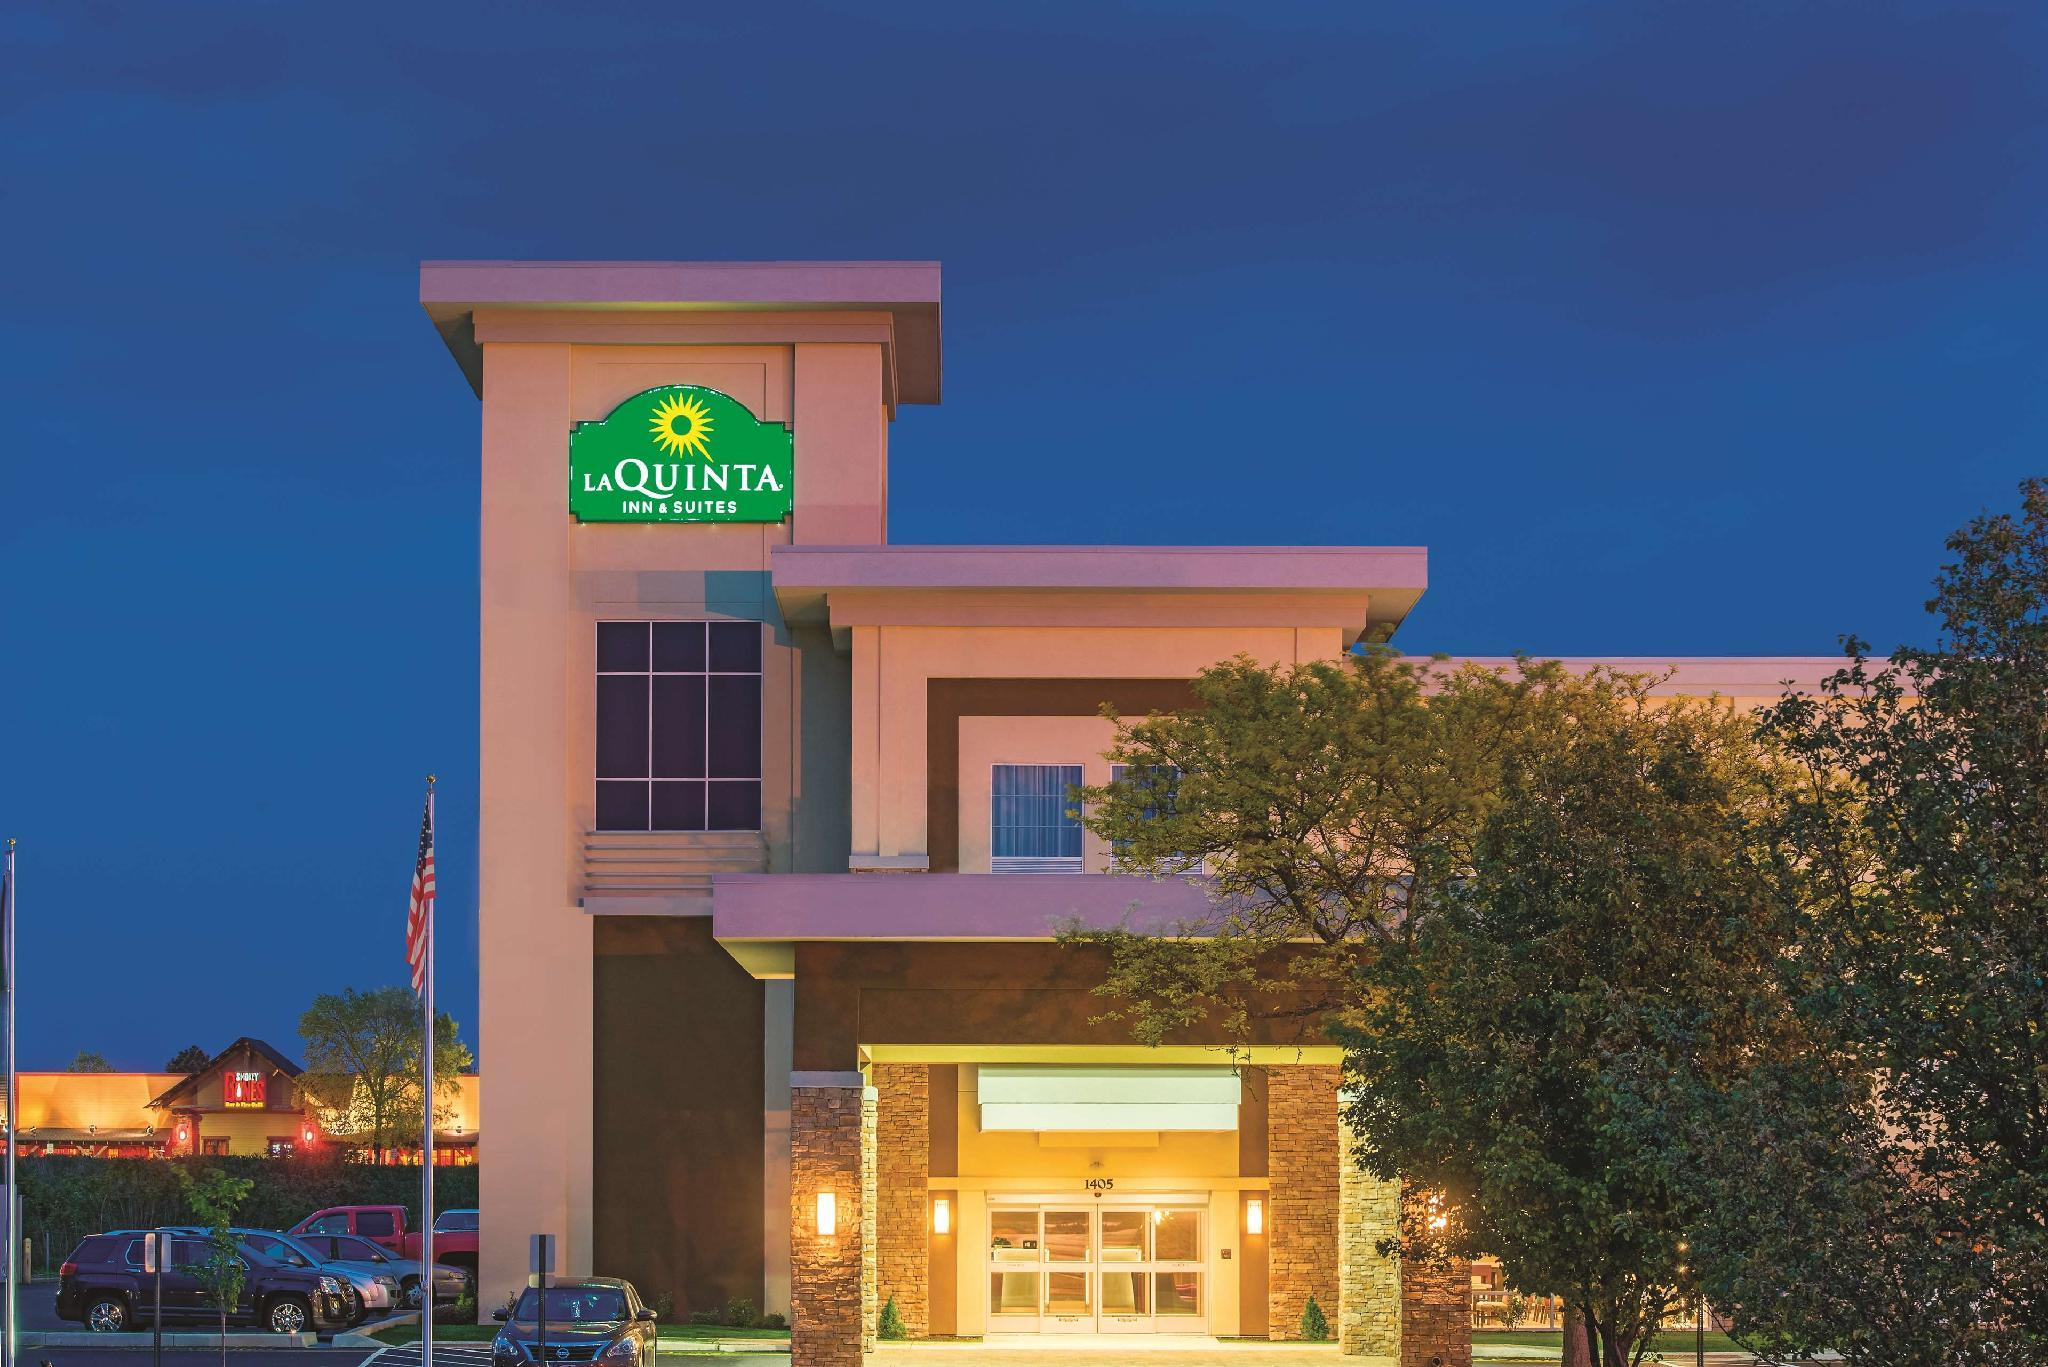 La Quinta Inn And Suites By Wyndham York